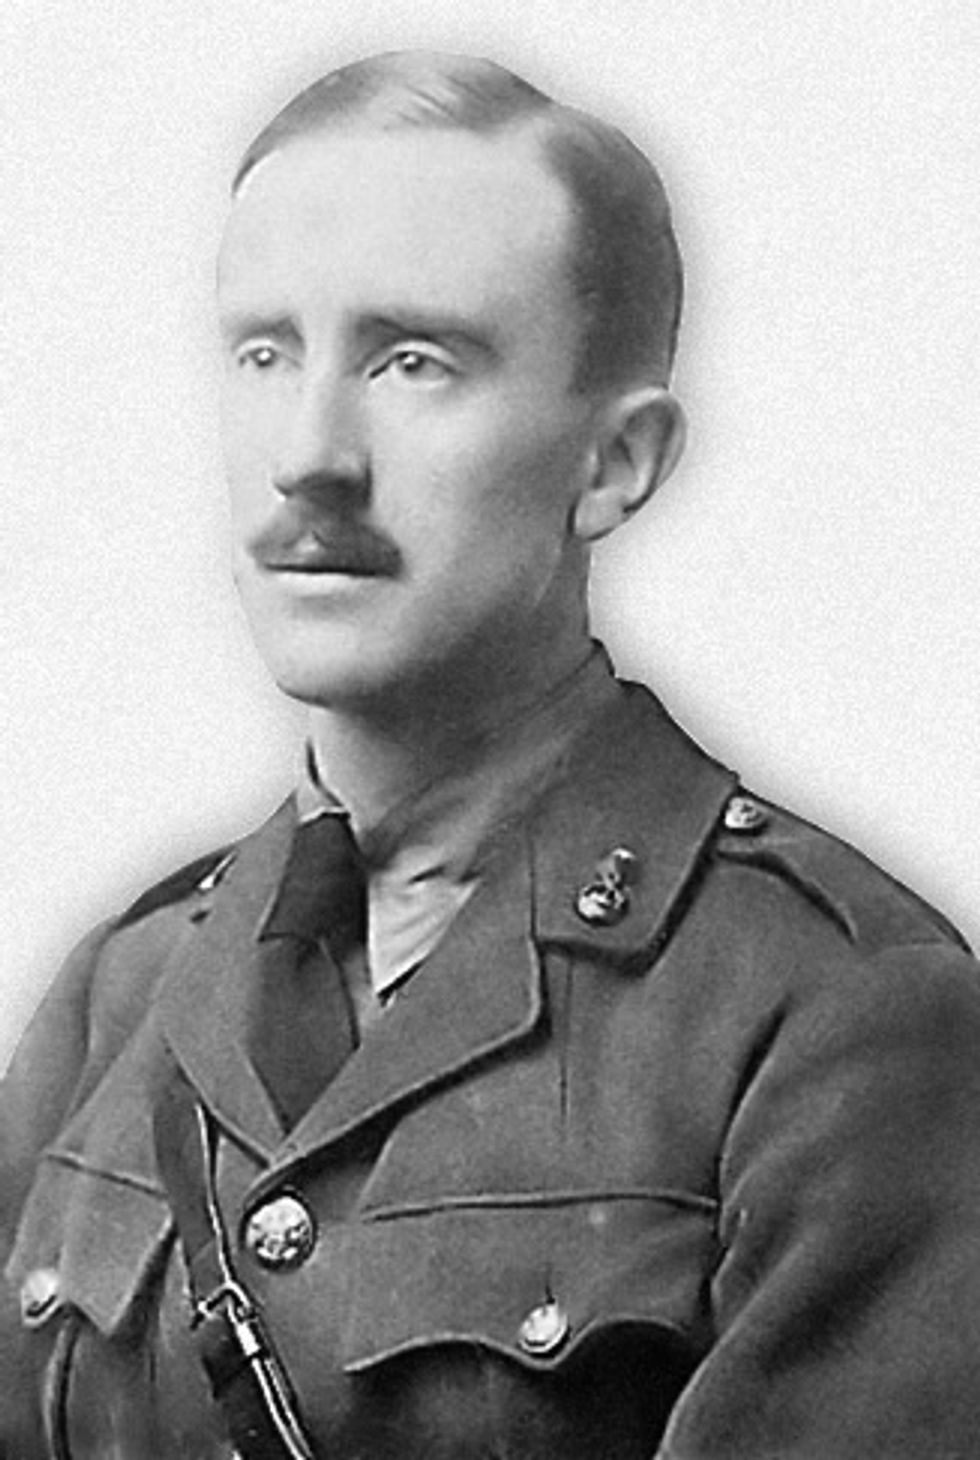 "Image based on a photograph of J. R. R. Tolkien in army uniform (taken in 1916, when Tolkien was aged 24). This image is a digitally modified version with cut-out contours, added gradient ""shadow"" around the contours, and noise reduction."